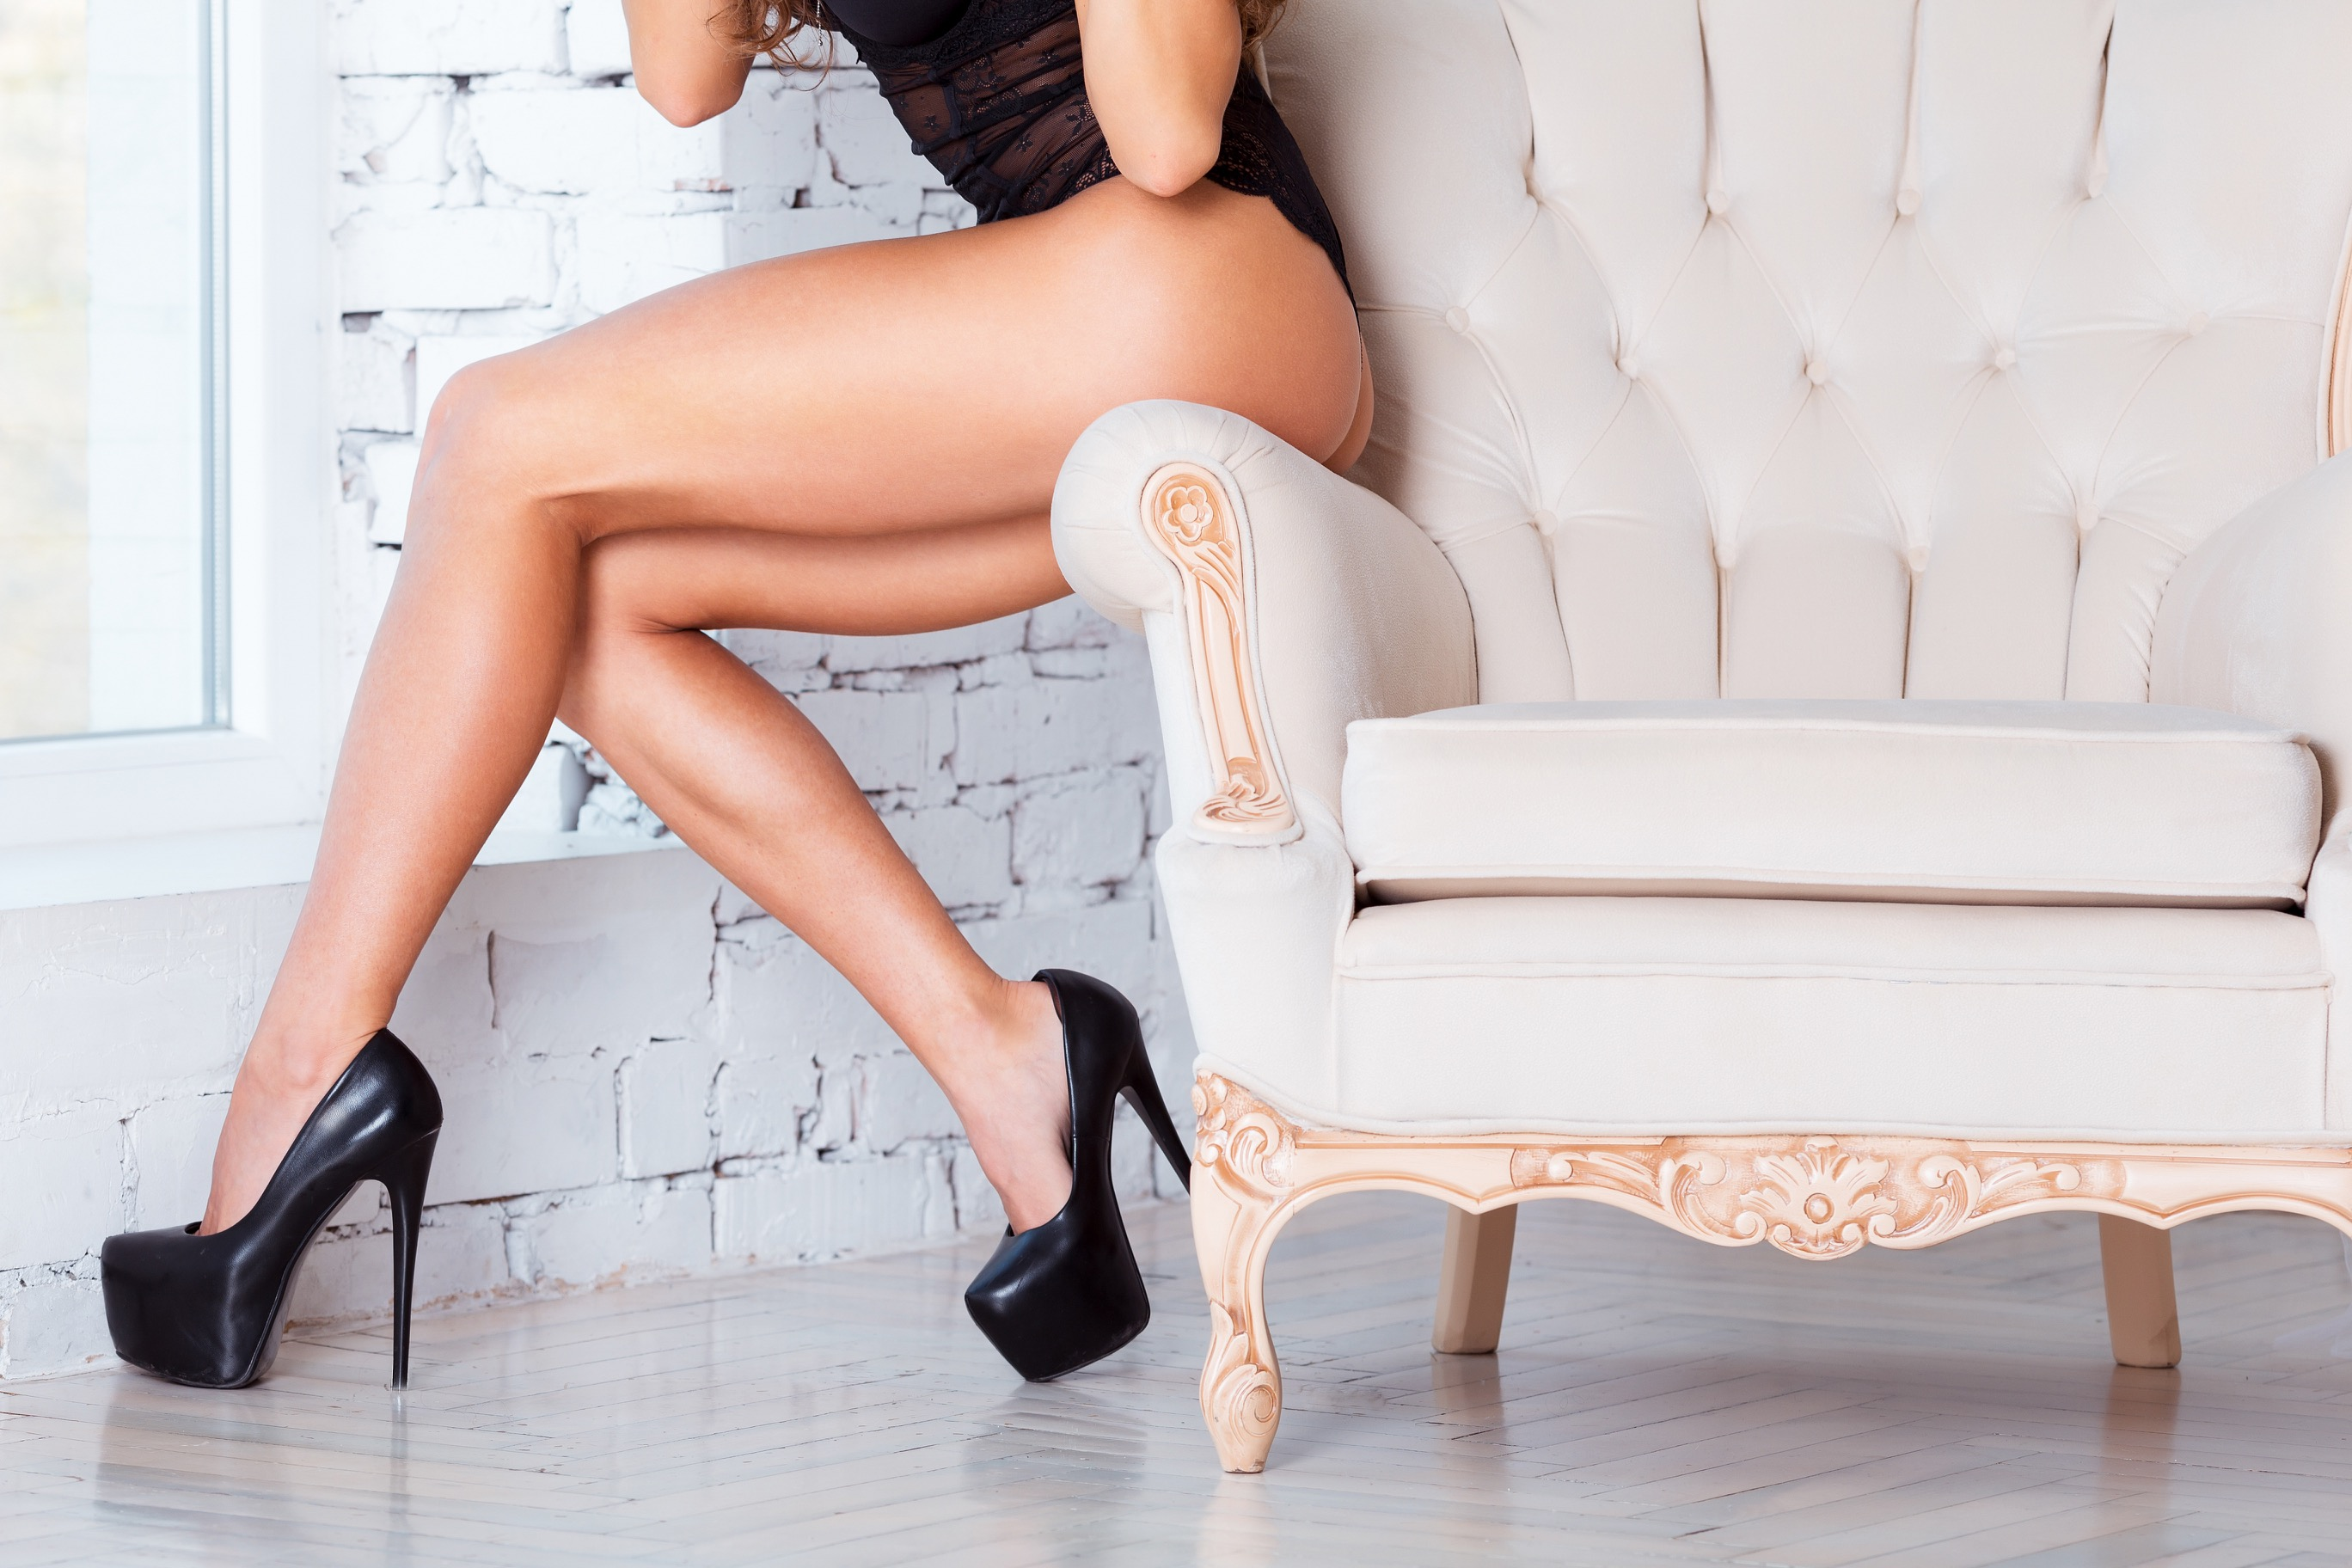 BM_Perfect, sexy legs and ass_96951067